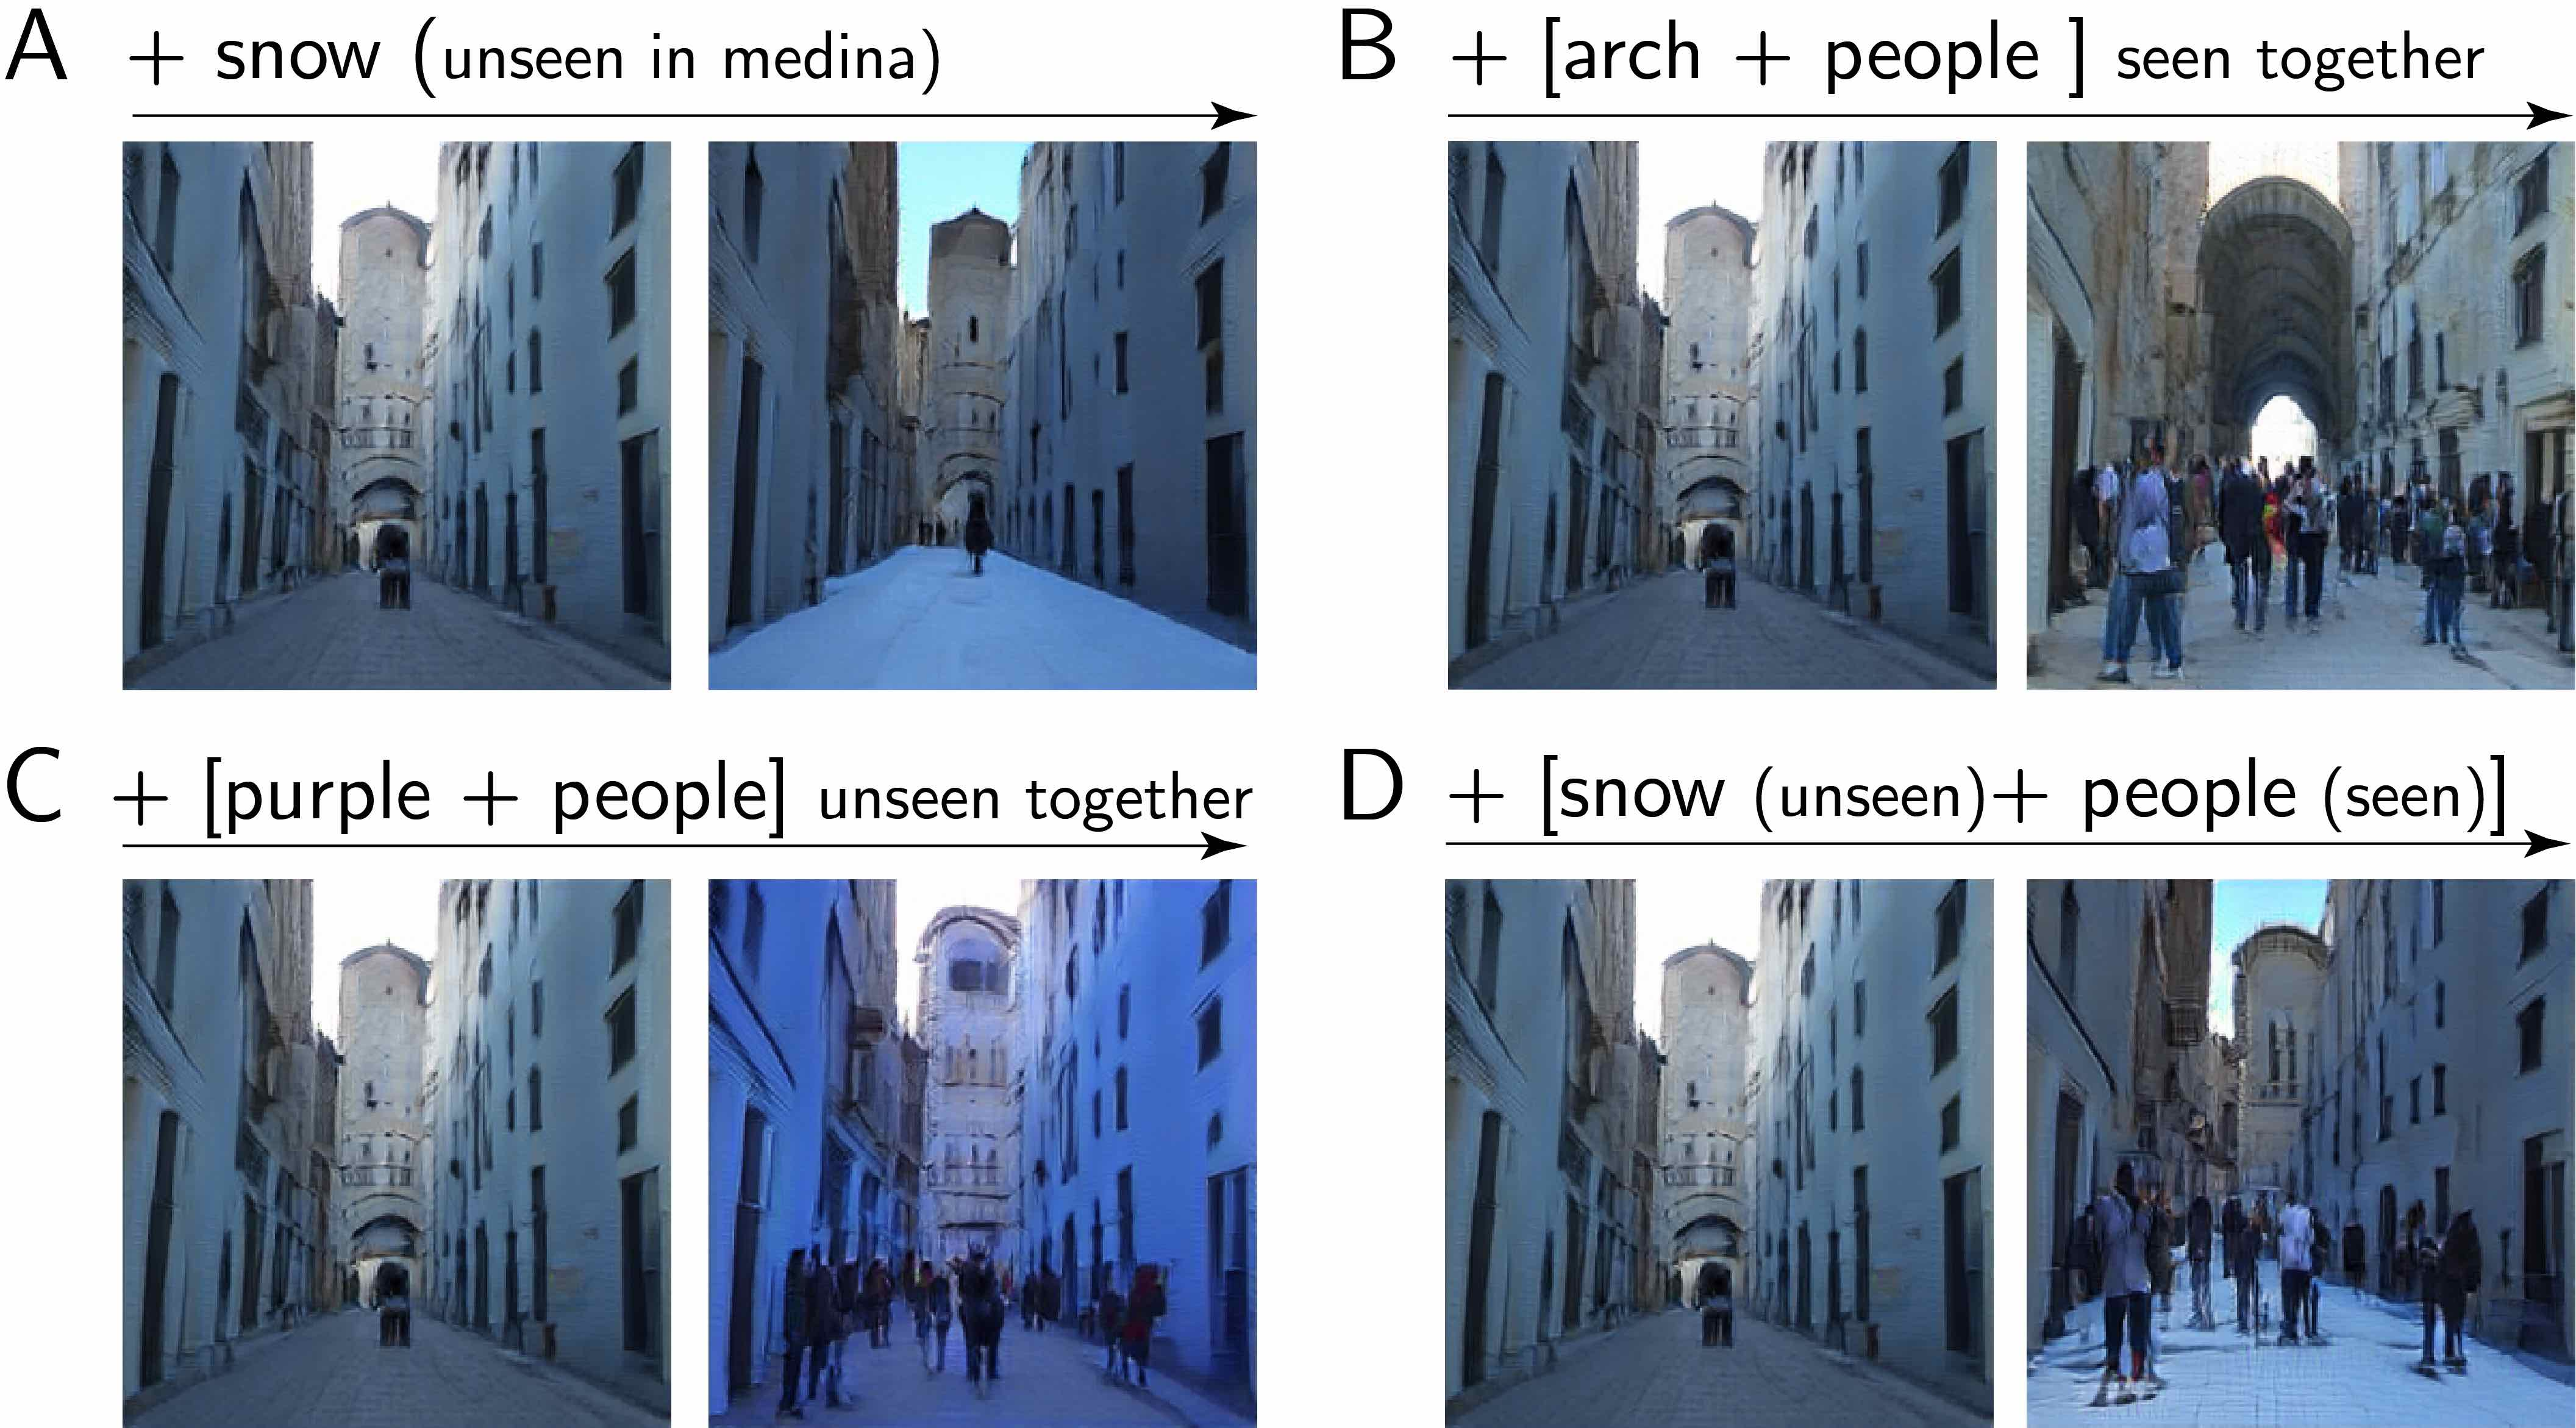 Several image changes produced by decomposed directions applied to the same starting image of a medina. Directions generalize (a) across and (b) within class. Two directions can be composed regardless of whether the corresponding concepts (c) did not co-occurr in the original corpus or (d) did co-occur.